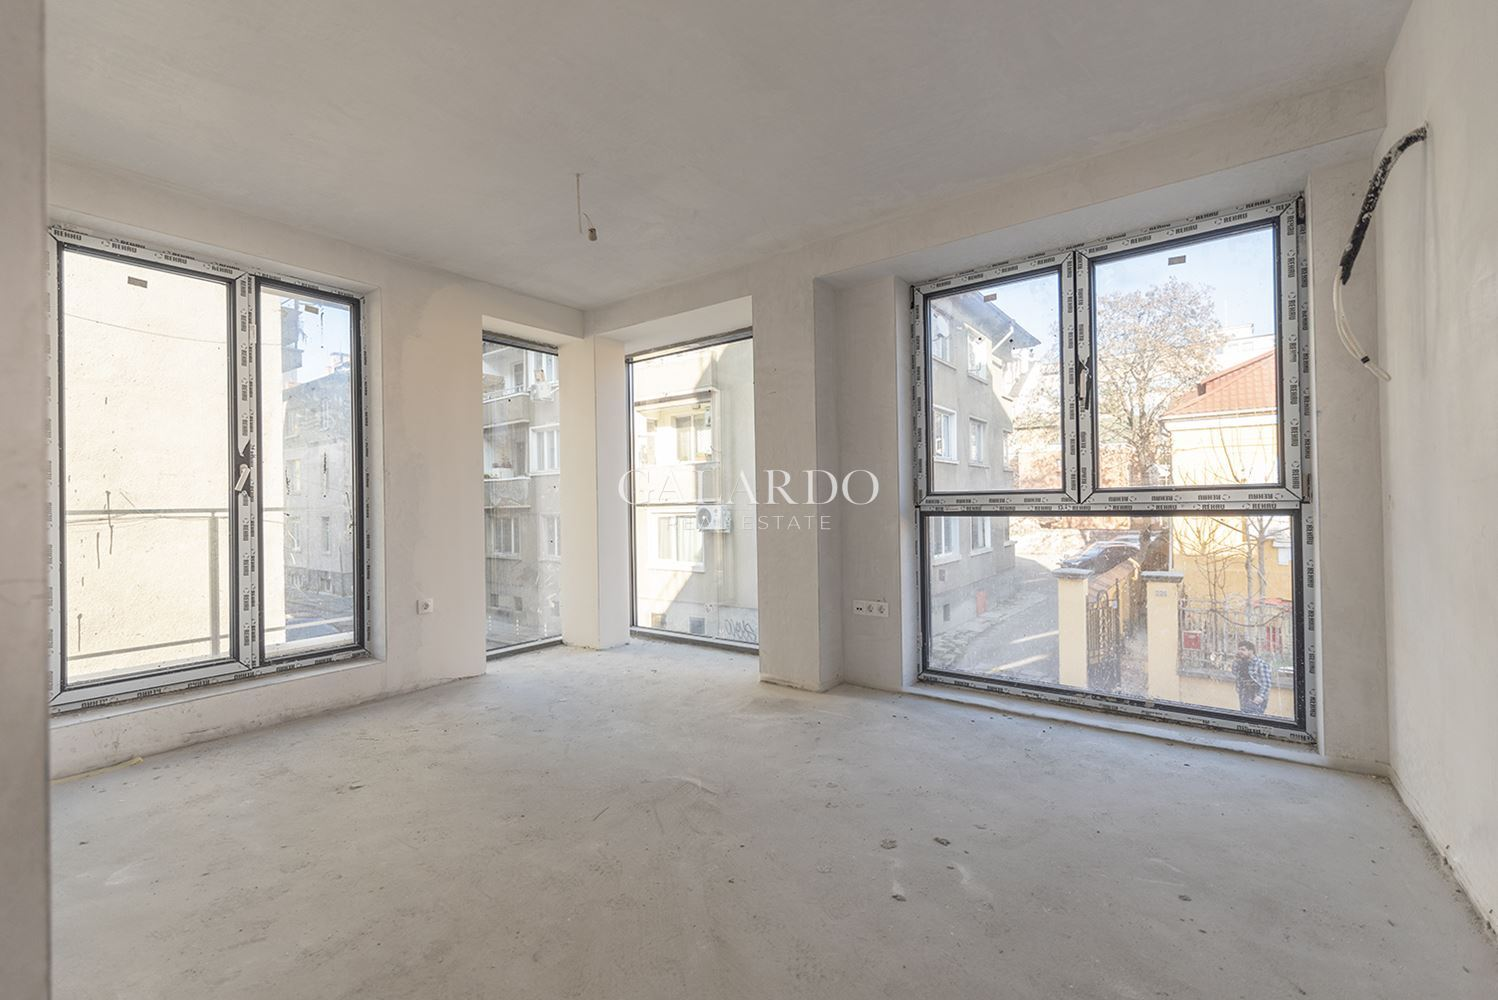 One-bedroom apartment for sale in a boutique building